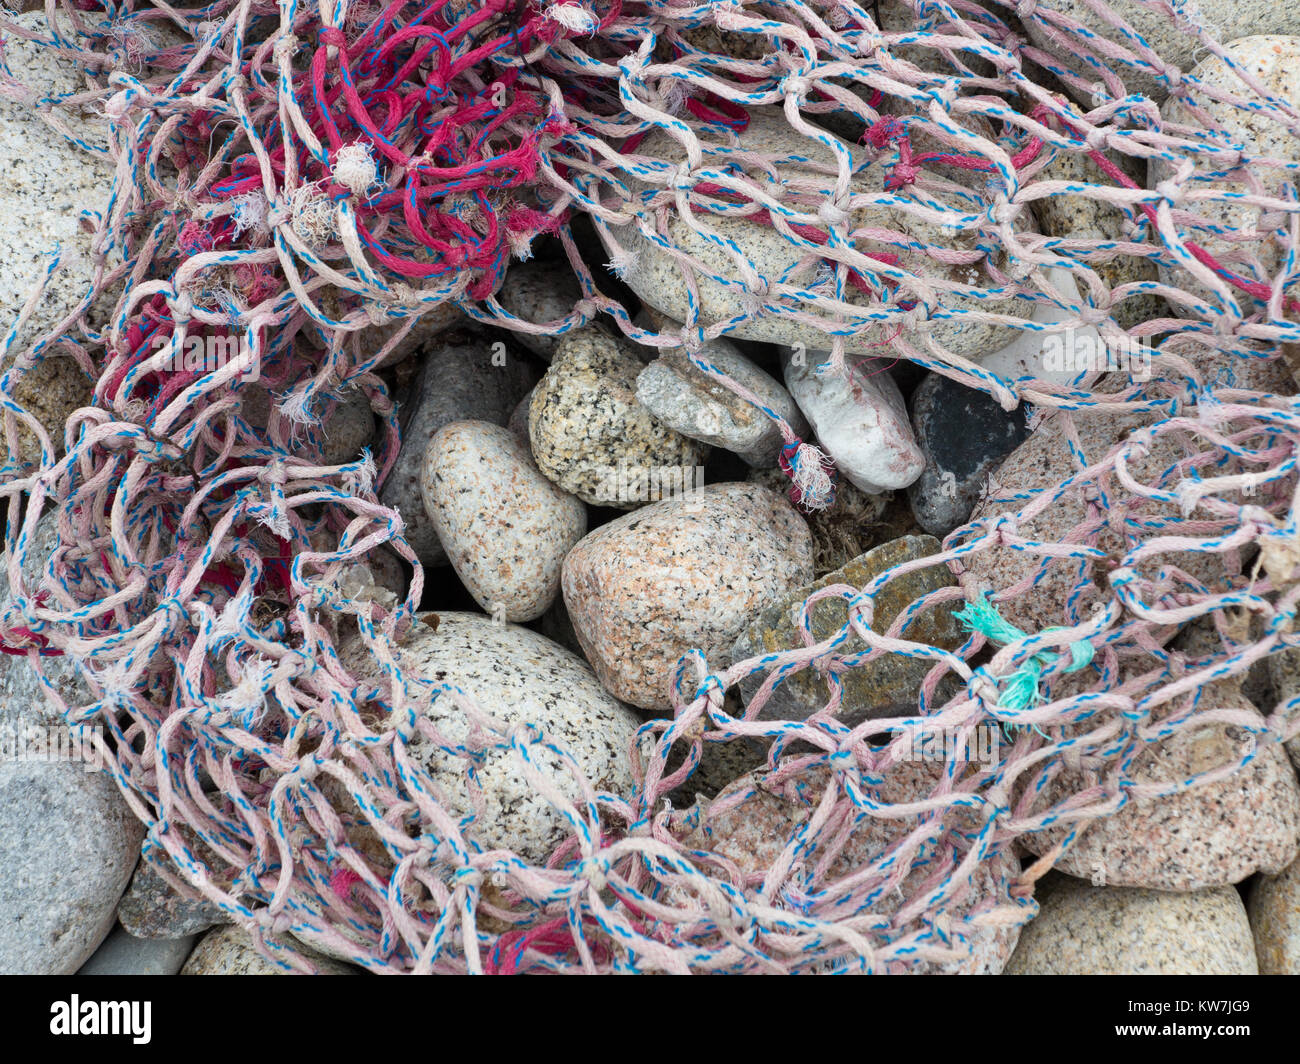 Stones on a beach covered by netting - Stock Image